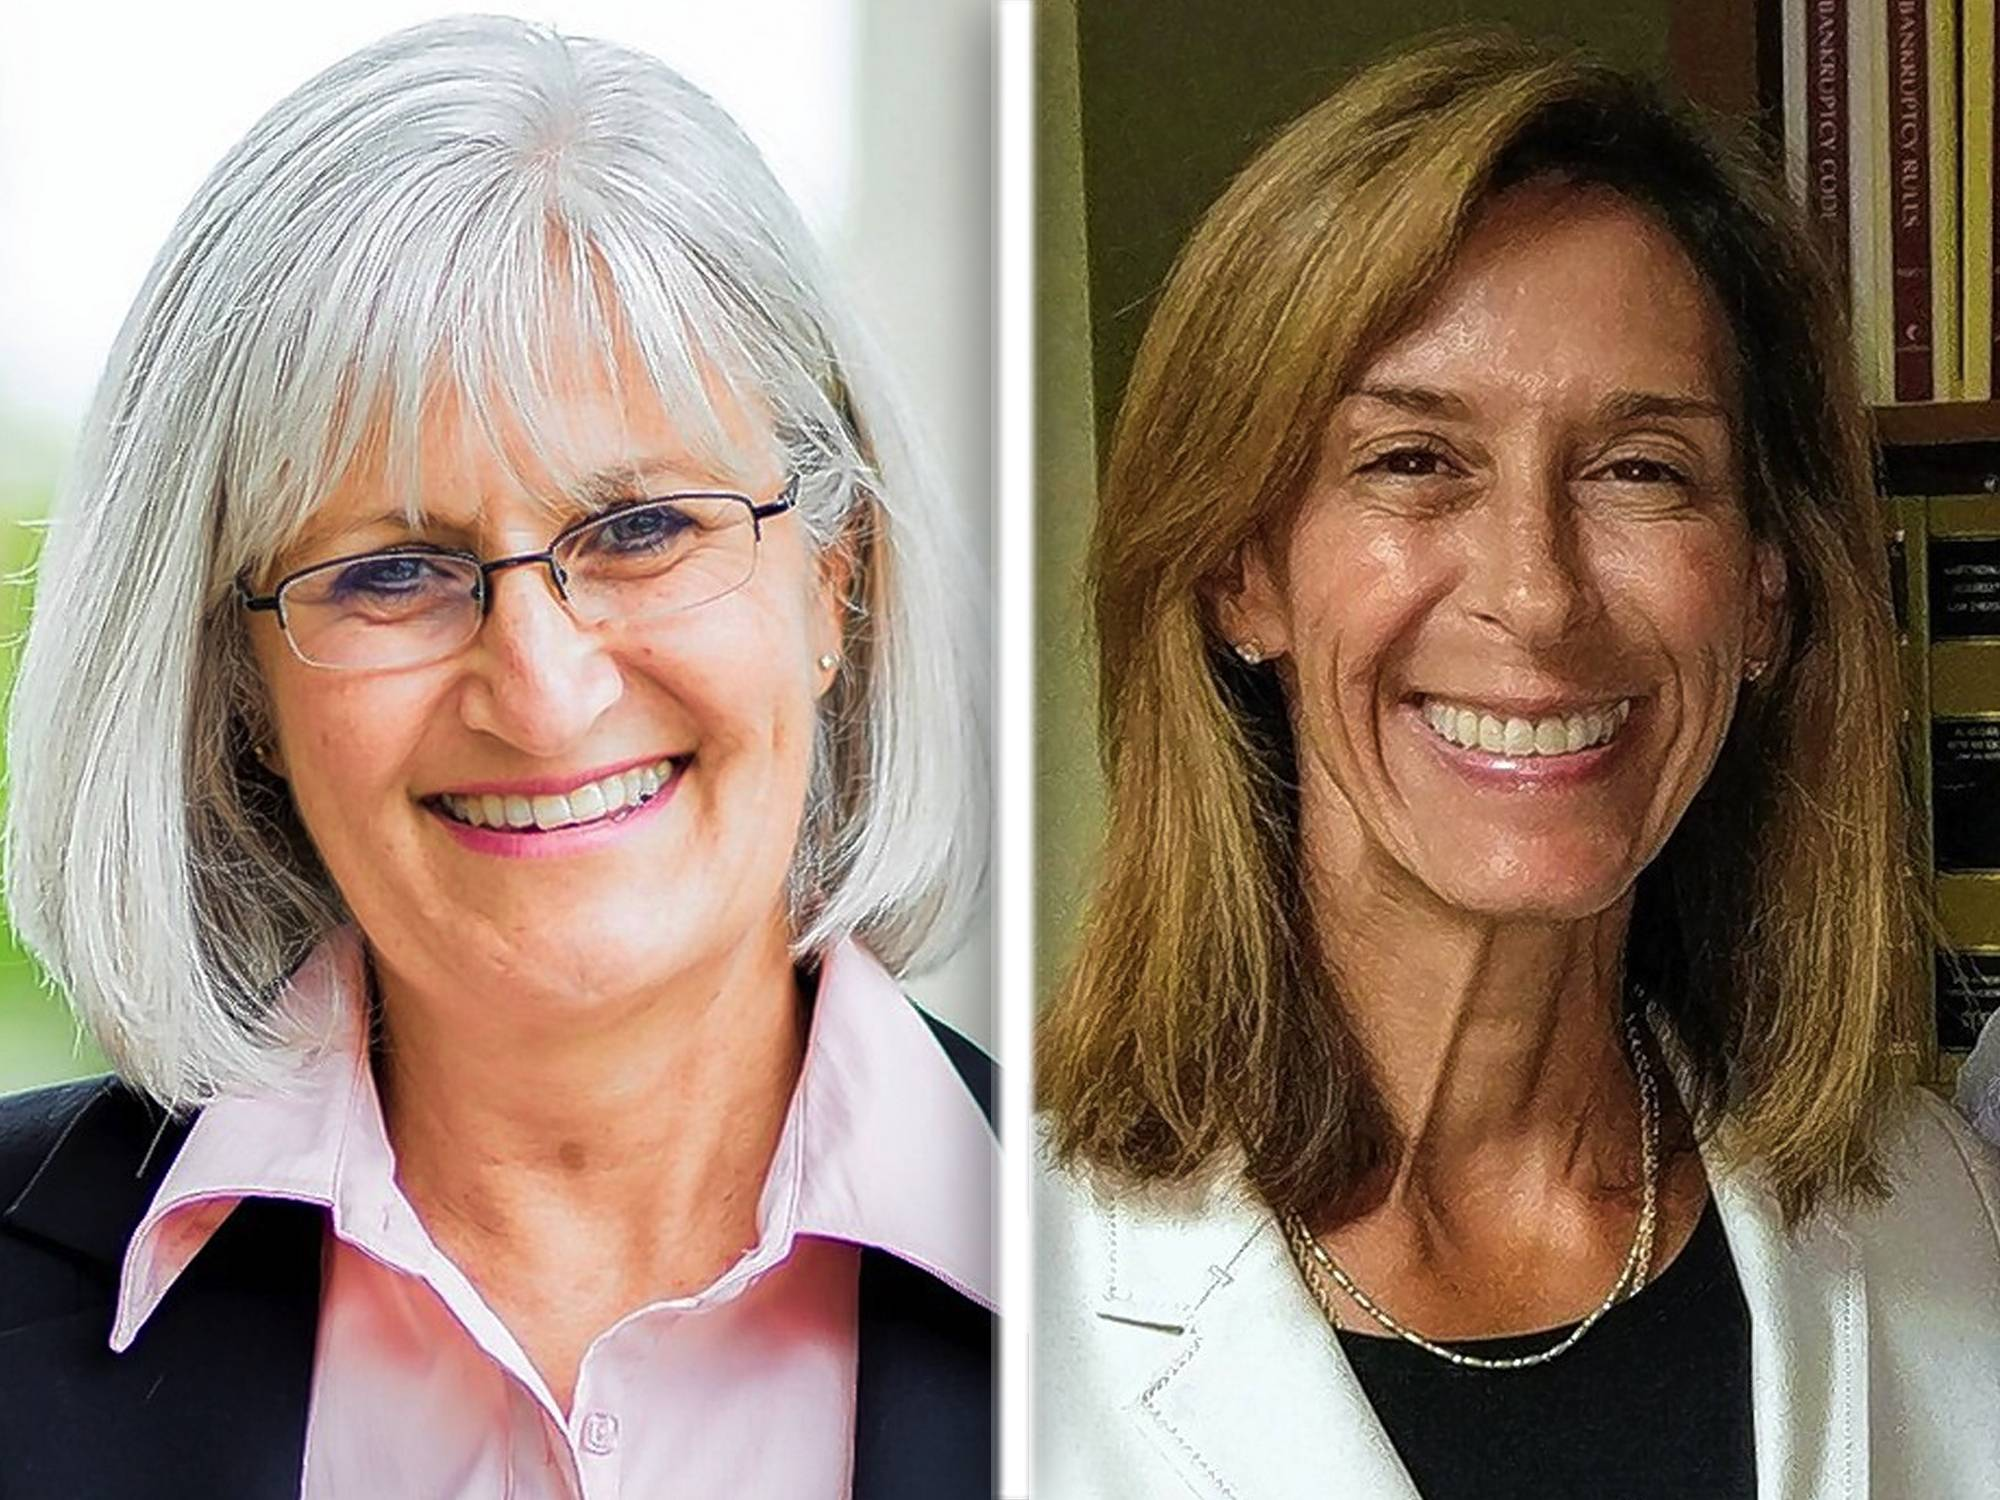 Democratic challenger Mary Edly-Allen, left, and Republican state Rep. Helene Miller Walsh are expected to receive final results next week in their race for the 51st House District seat.